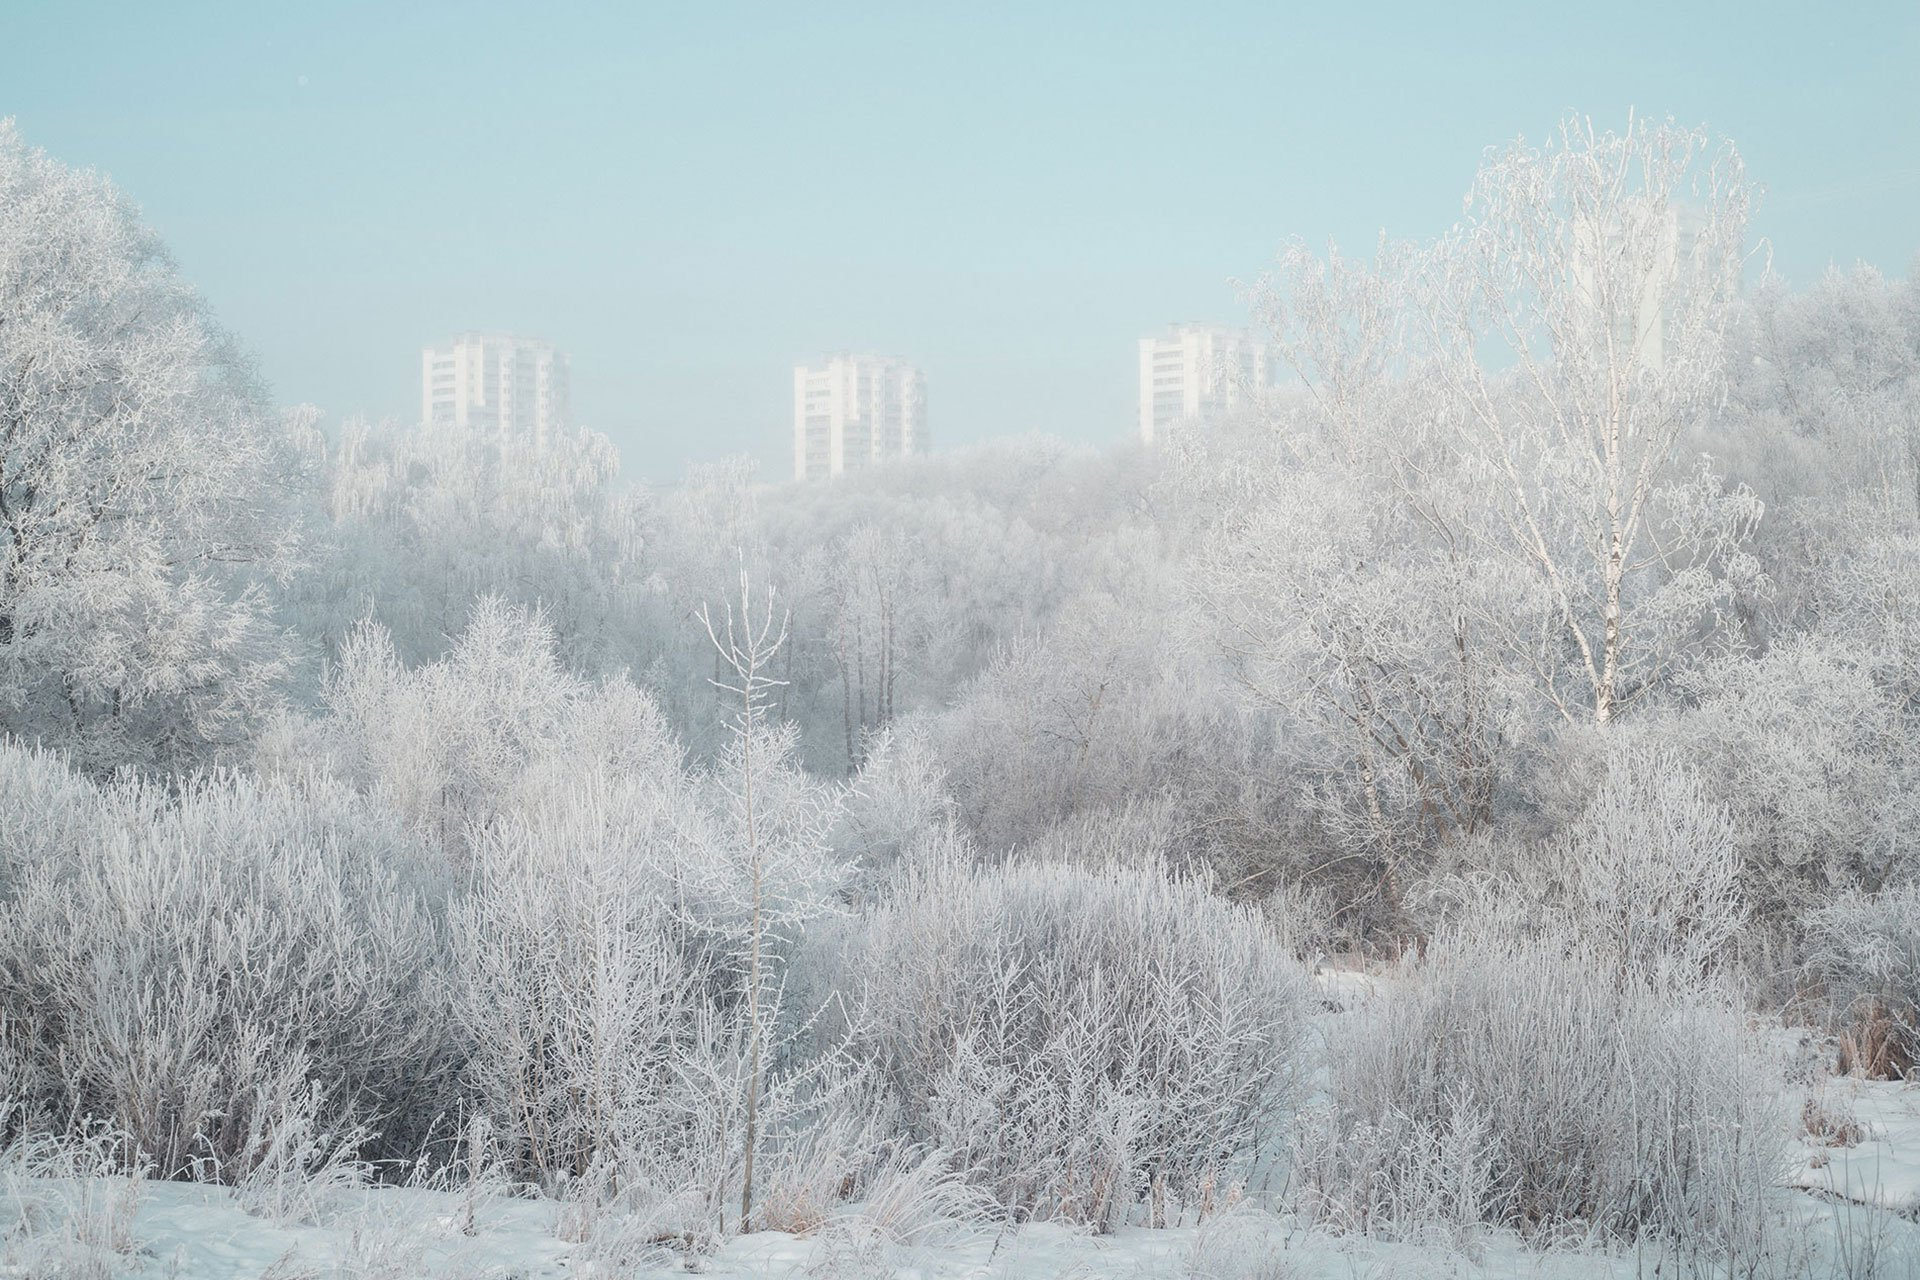 Landscapes of Russia: panoramas and cityviews from the largest nation on Earth